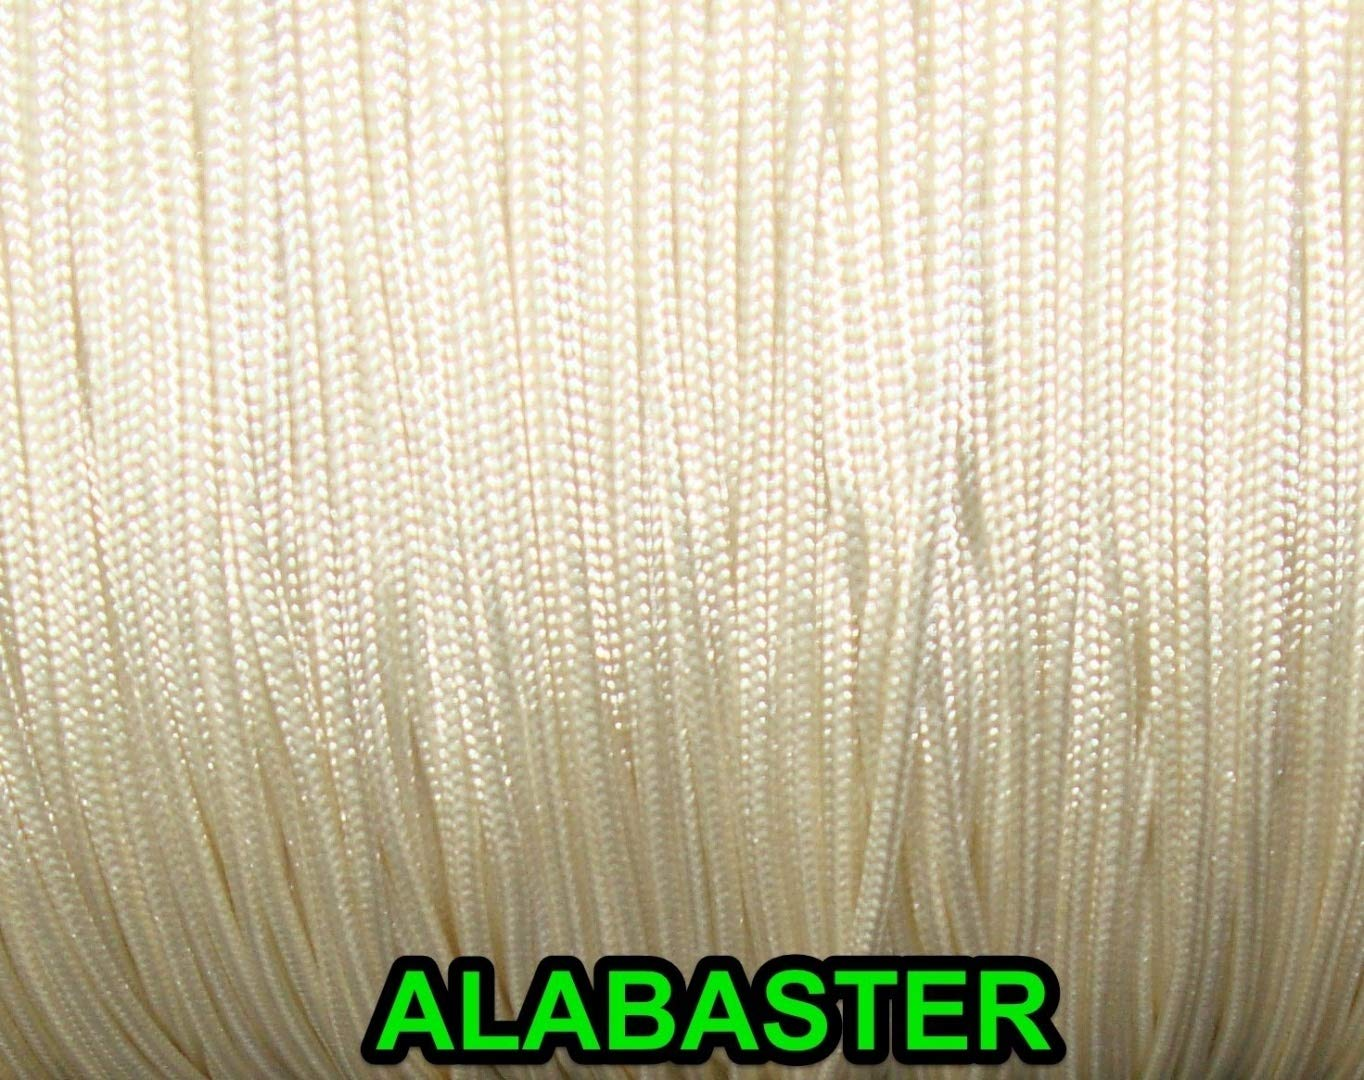 100 FEET 1.4 MM OAK Professional Grade Braided Nylon Lift Cord For Blinds and Shades Amazing Drapery Hardware